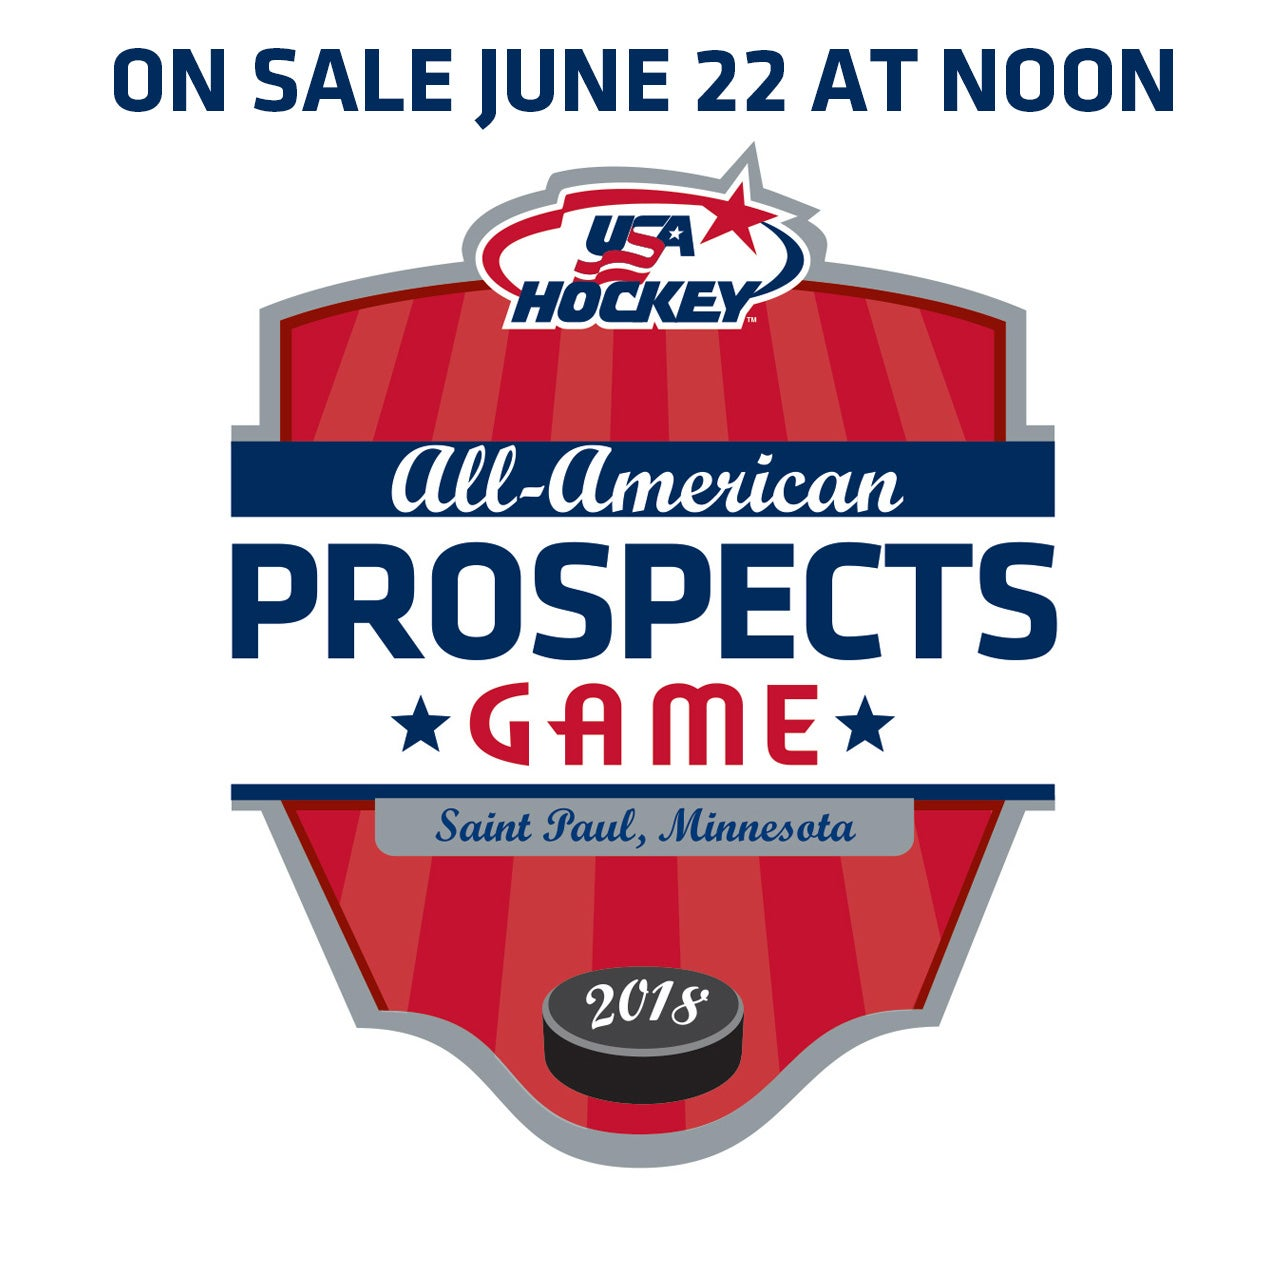 USA Hockey All-American Prospects Game